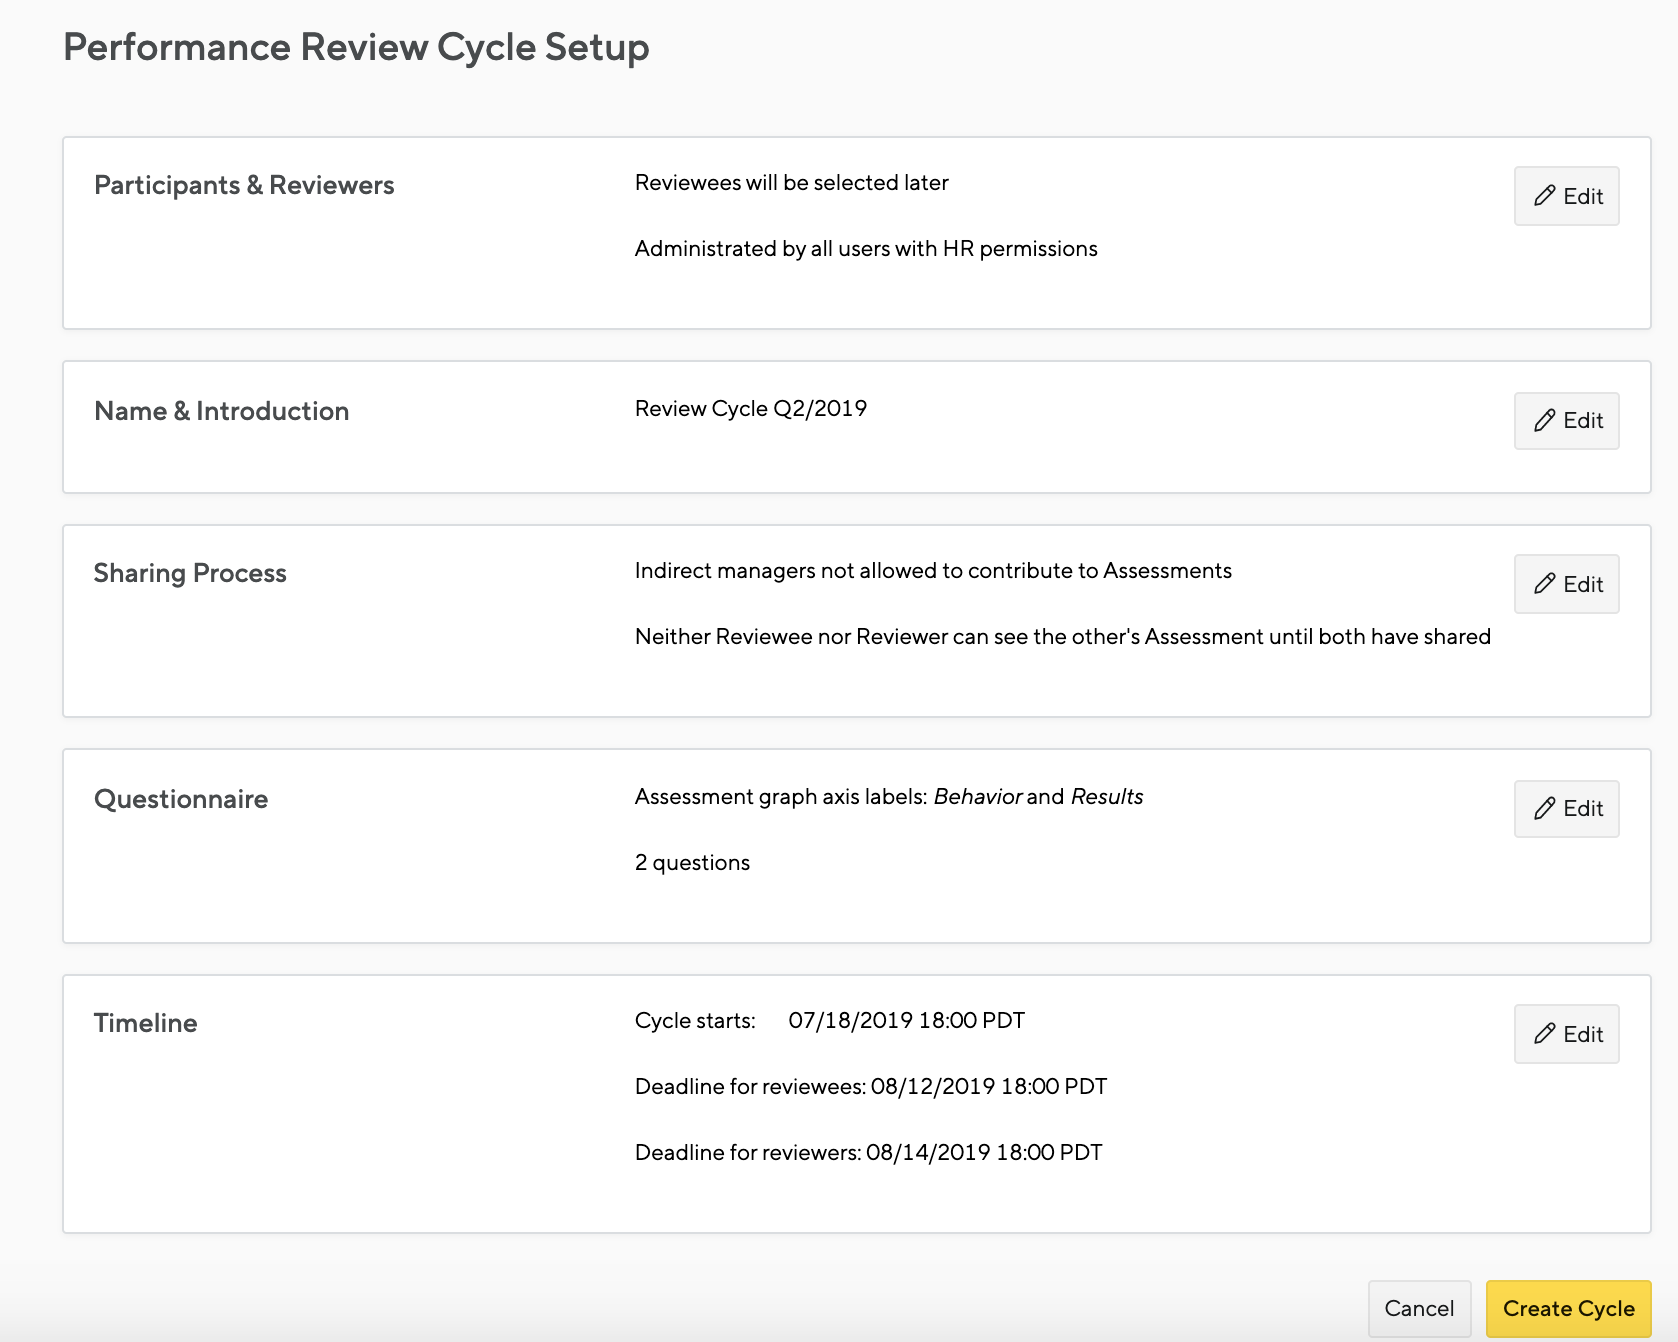 Kicking off, administering a review cycle - Small Improvements